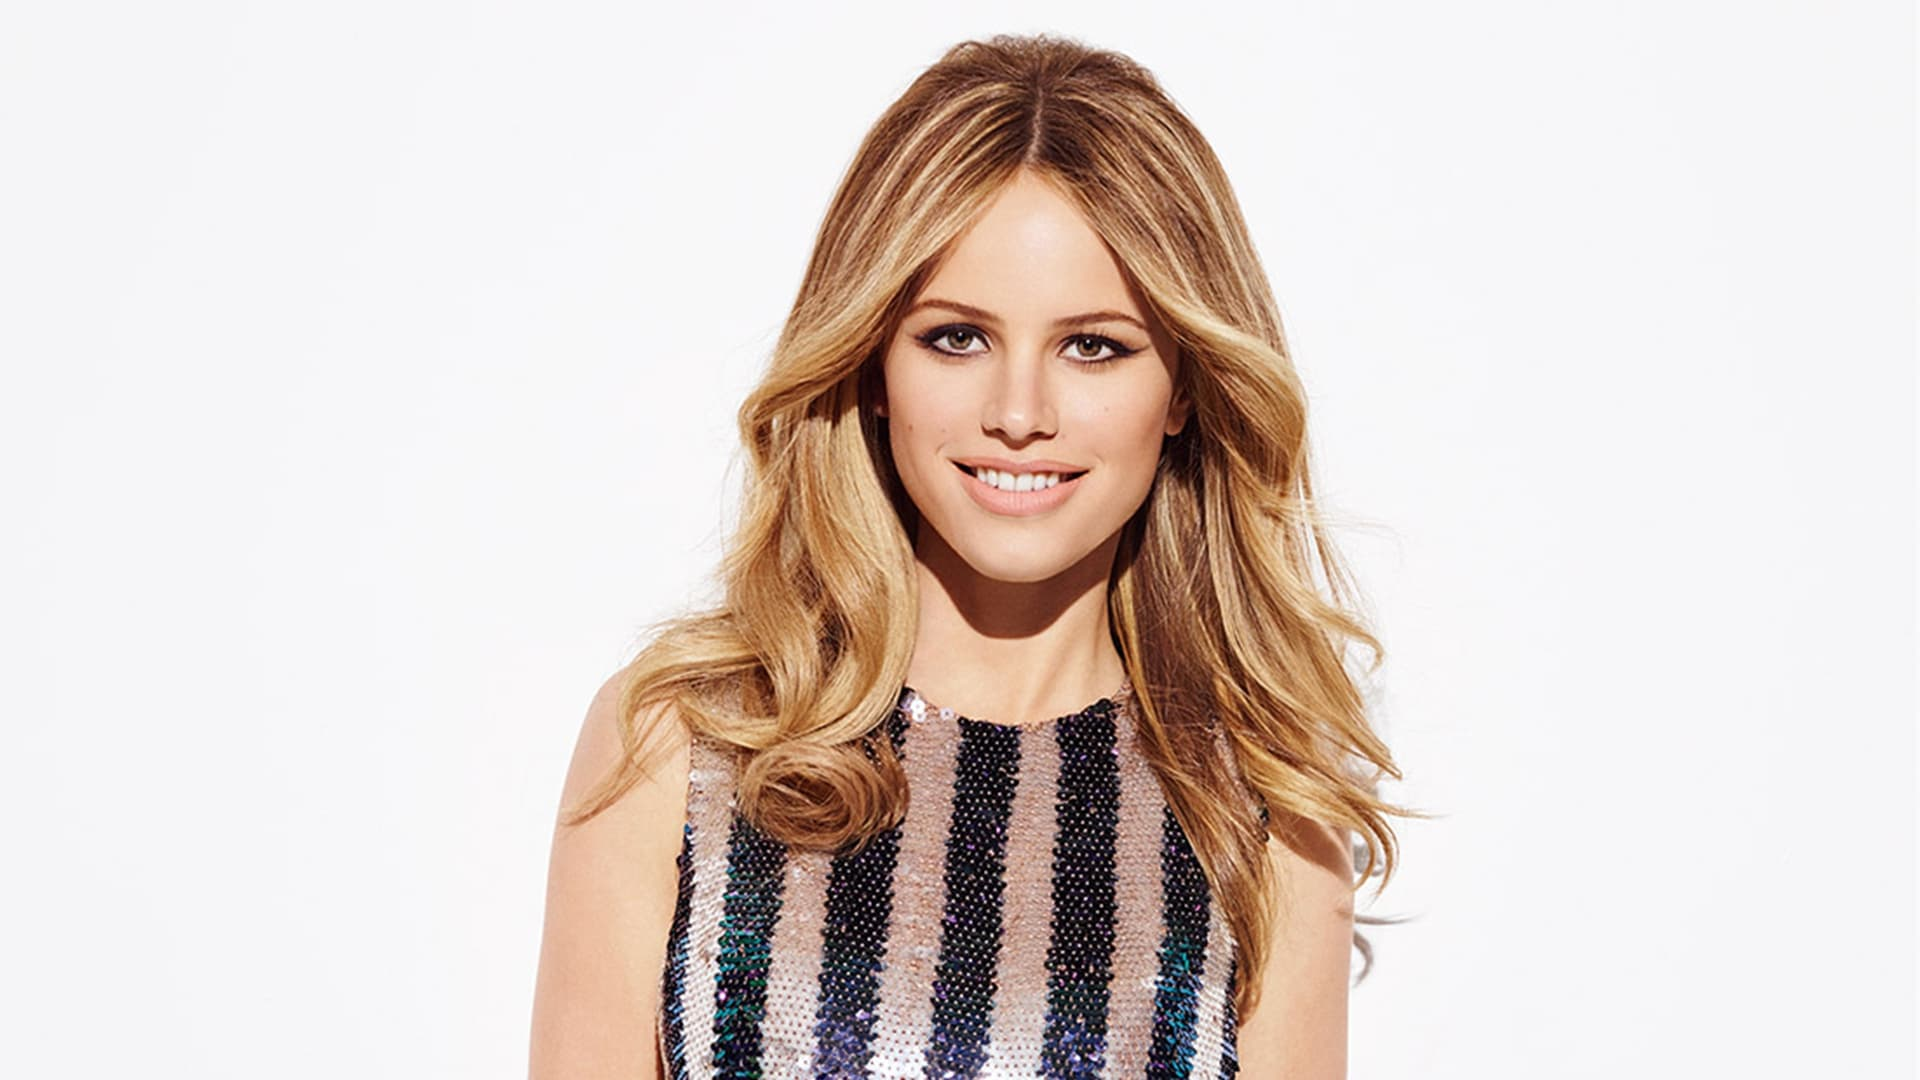 Sport Cars Wallpapers With Girls Halston Sage Wallpapers Hd High Quality Resolution Download